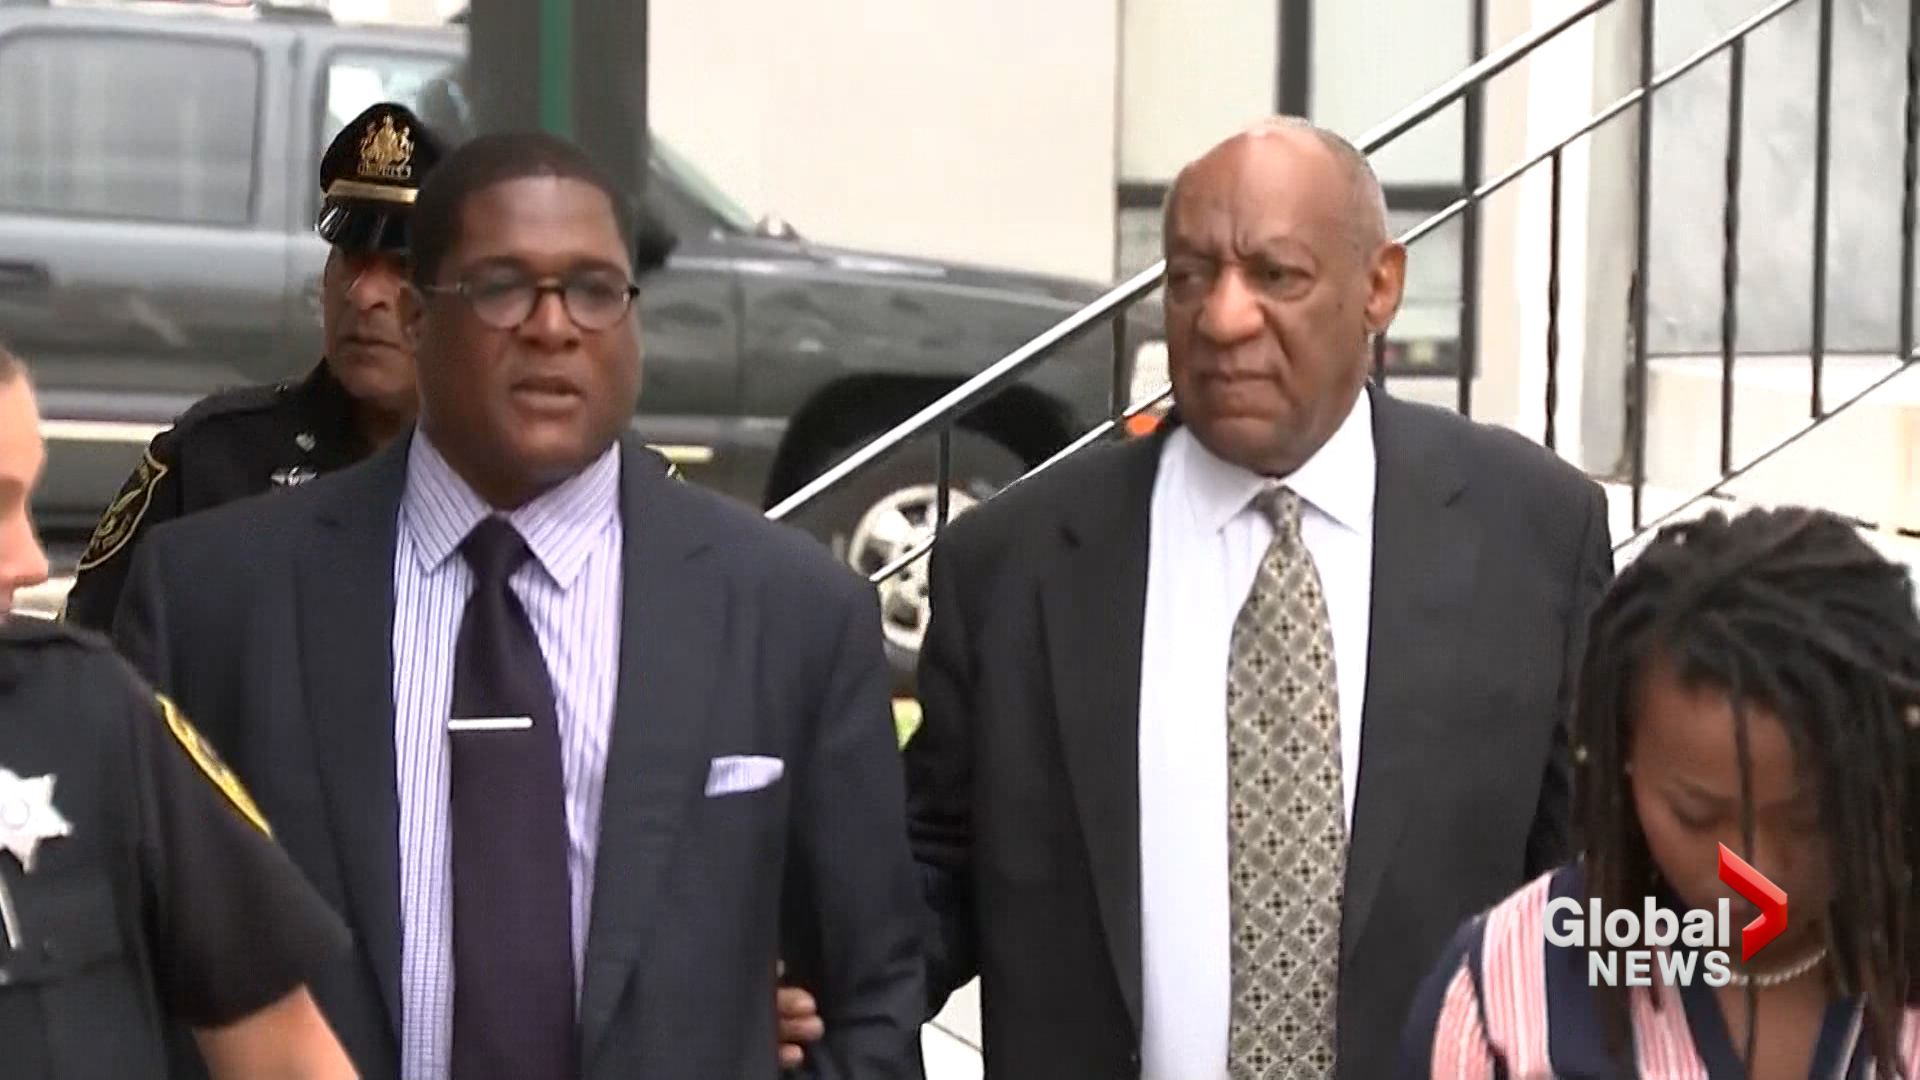 COSBY VERDICT | Jurors tell judge they are deadlocked